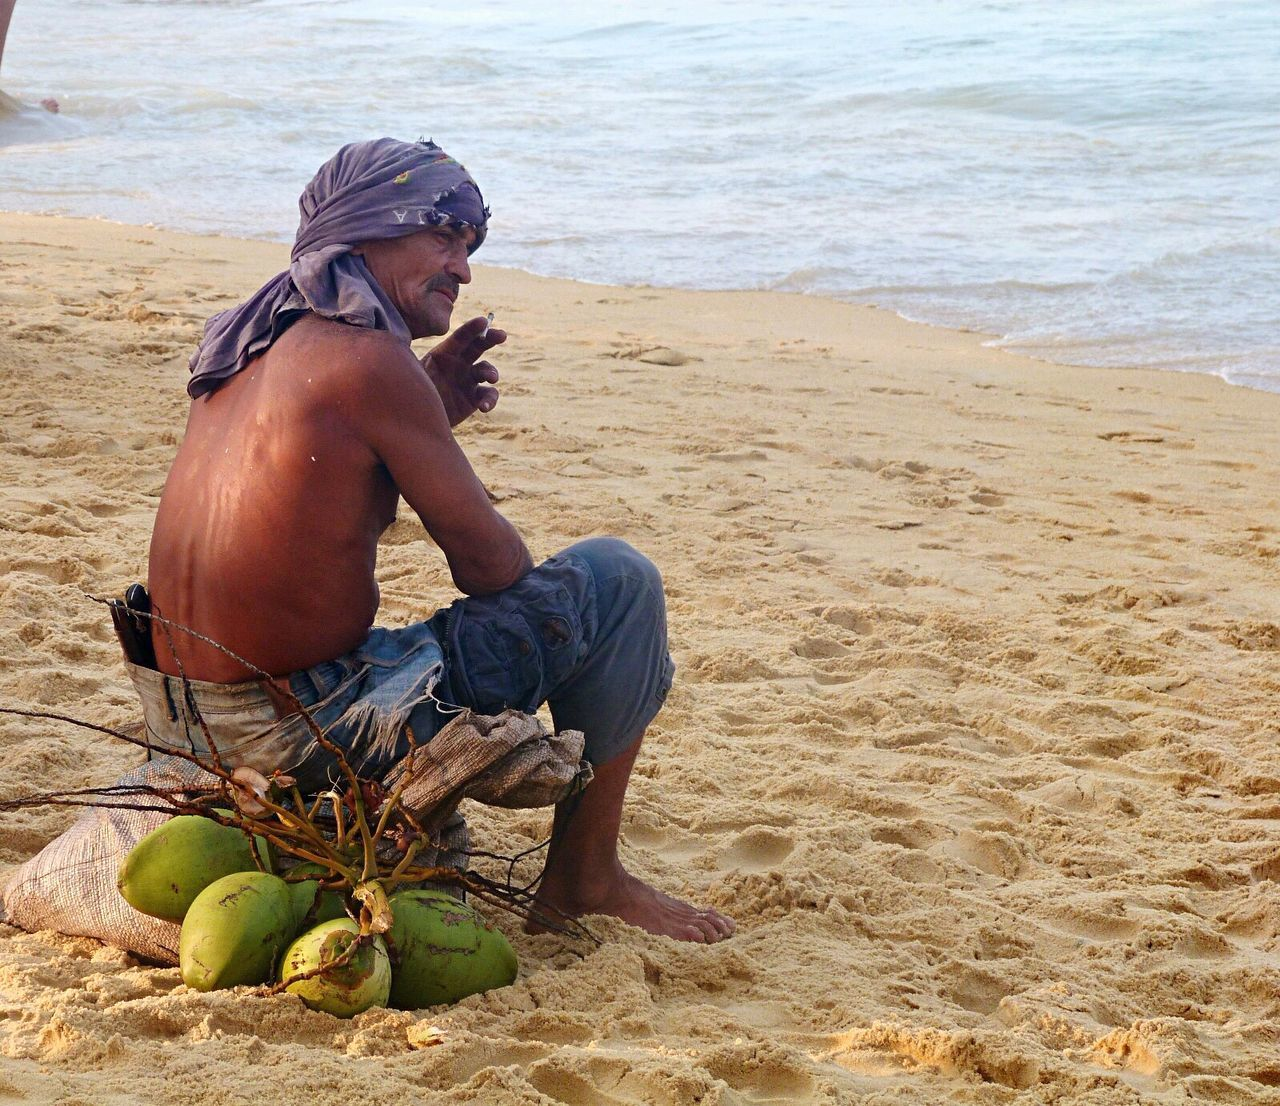 real people, full length, one person, sitting, beach, day, shirtless, sand, sea, lifestyles, outdoors, nature, working, young adult, water, adult, people